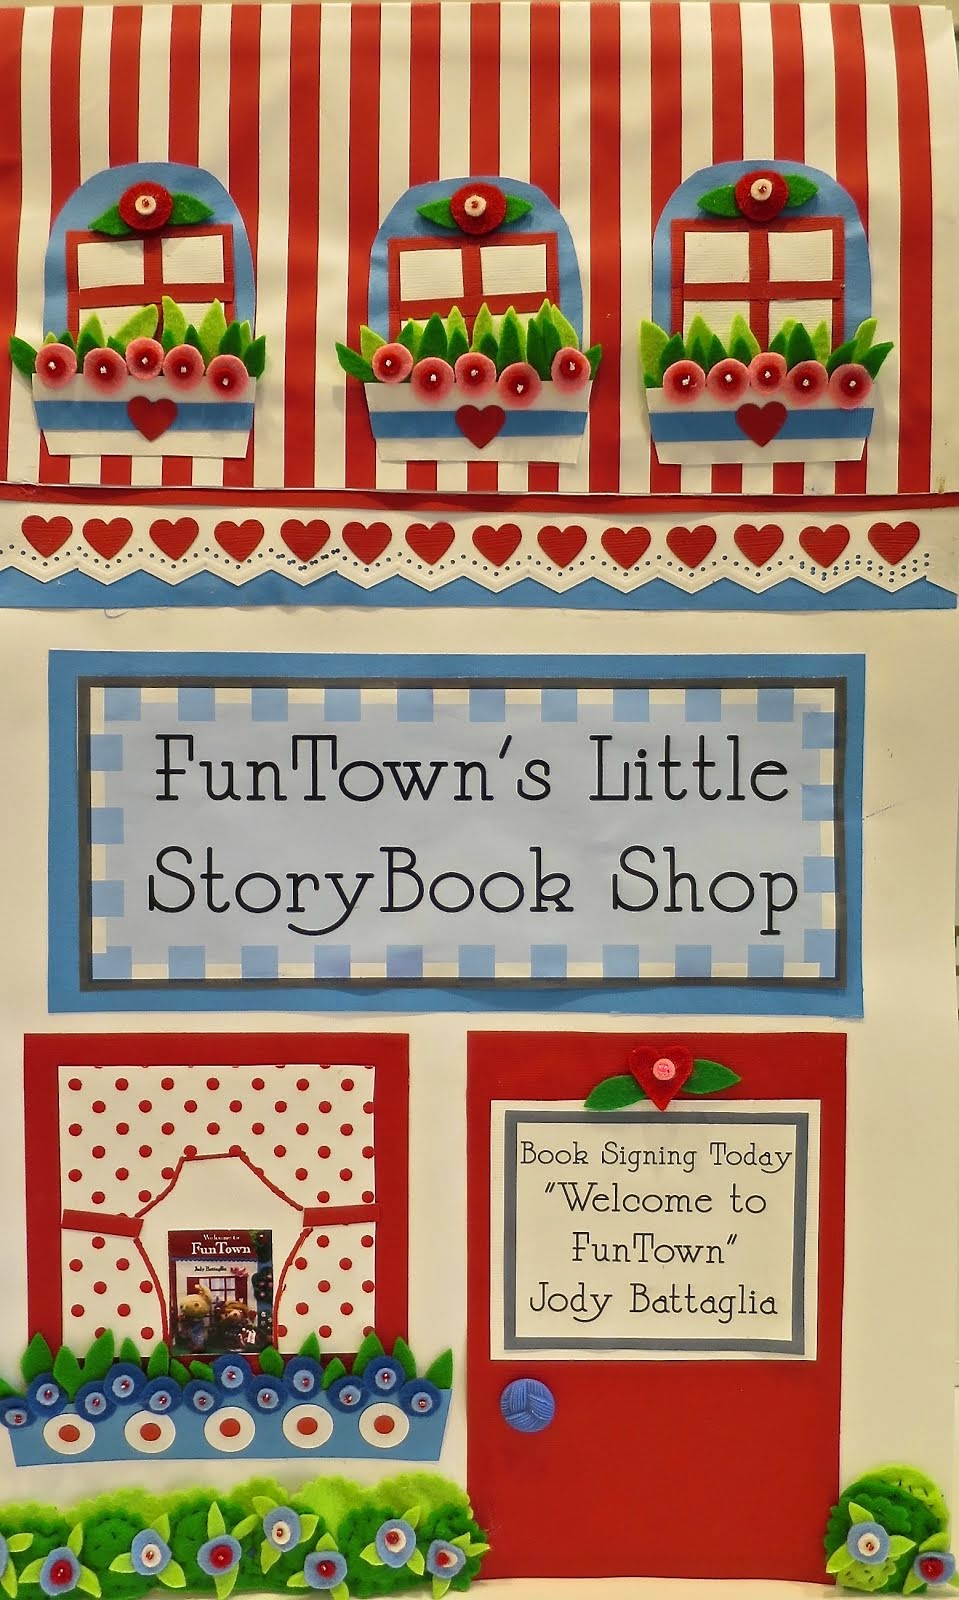 FunTown's Little Storybook Shop